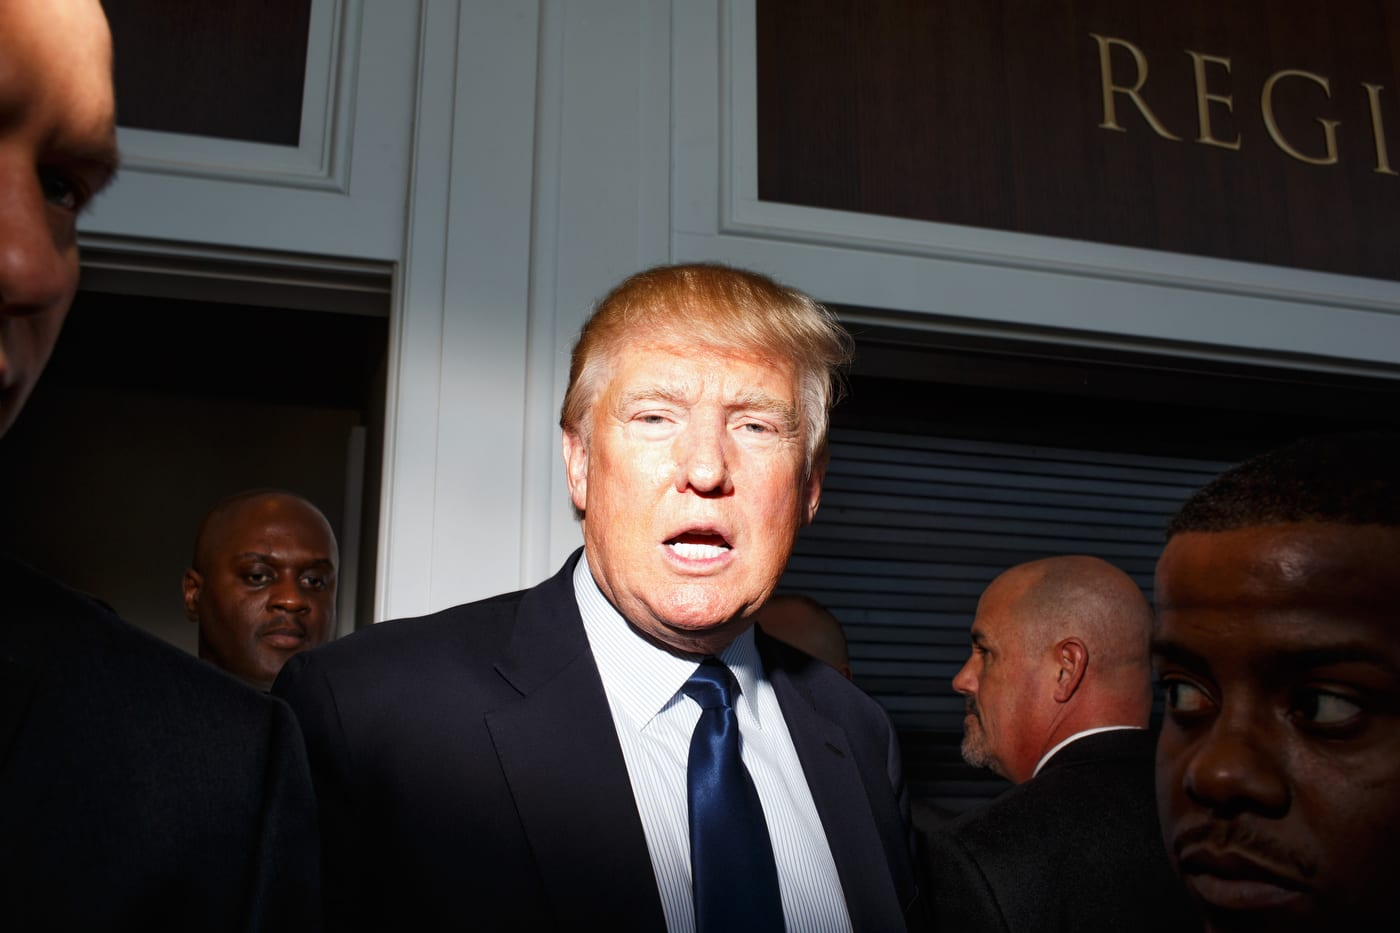 Donald Trump, surrounded by security, makes his way to a series of media interviews at CPAC in National Harbor, MD on Friday, February 27, 2015.